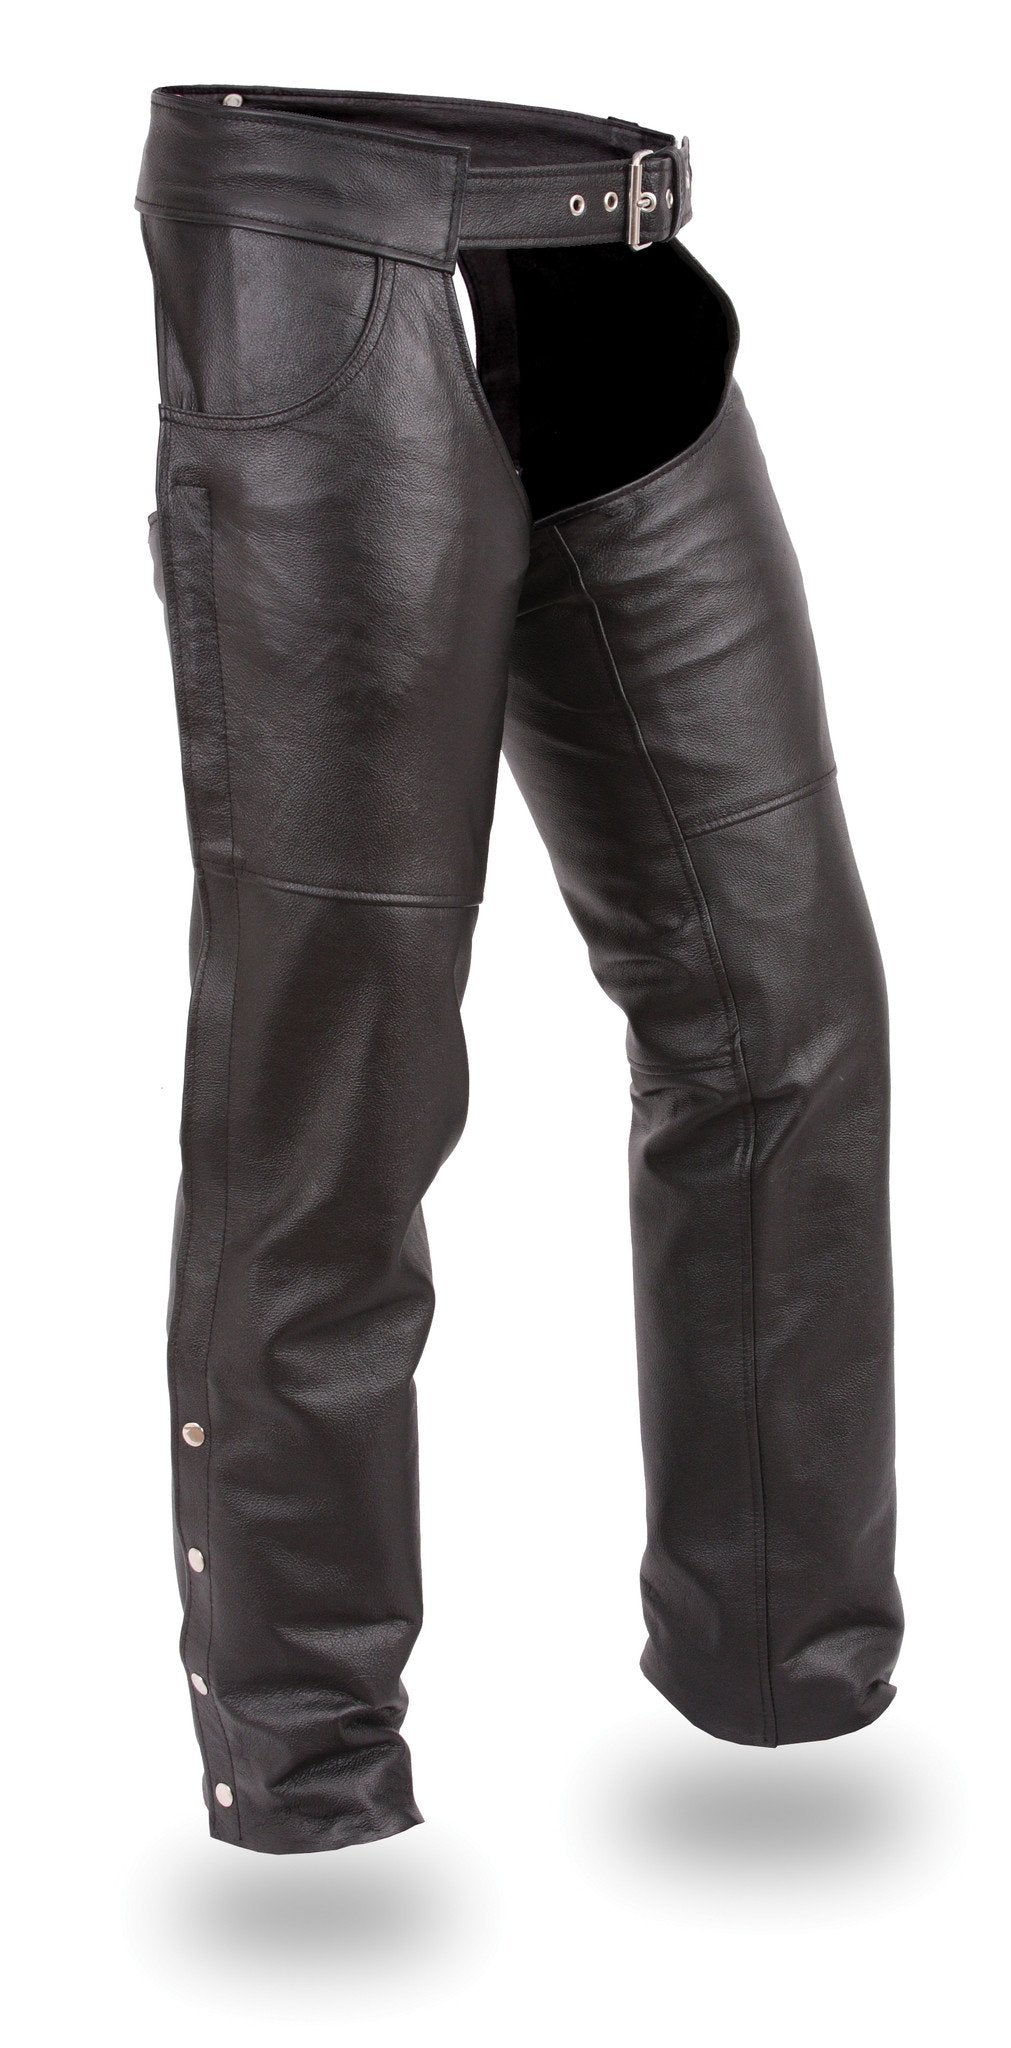 Stampede Black Leather Chaps for Men or Women - SKU GRL-FIM835NOC-FM - Ghost Rider Leather